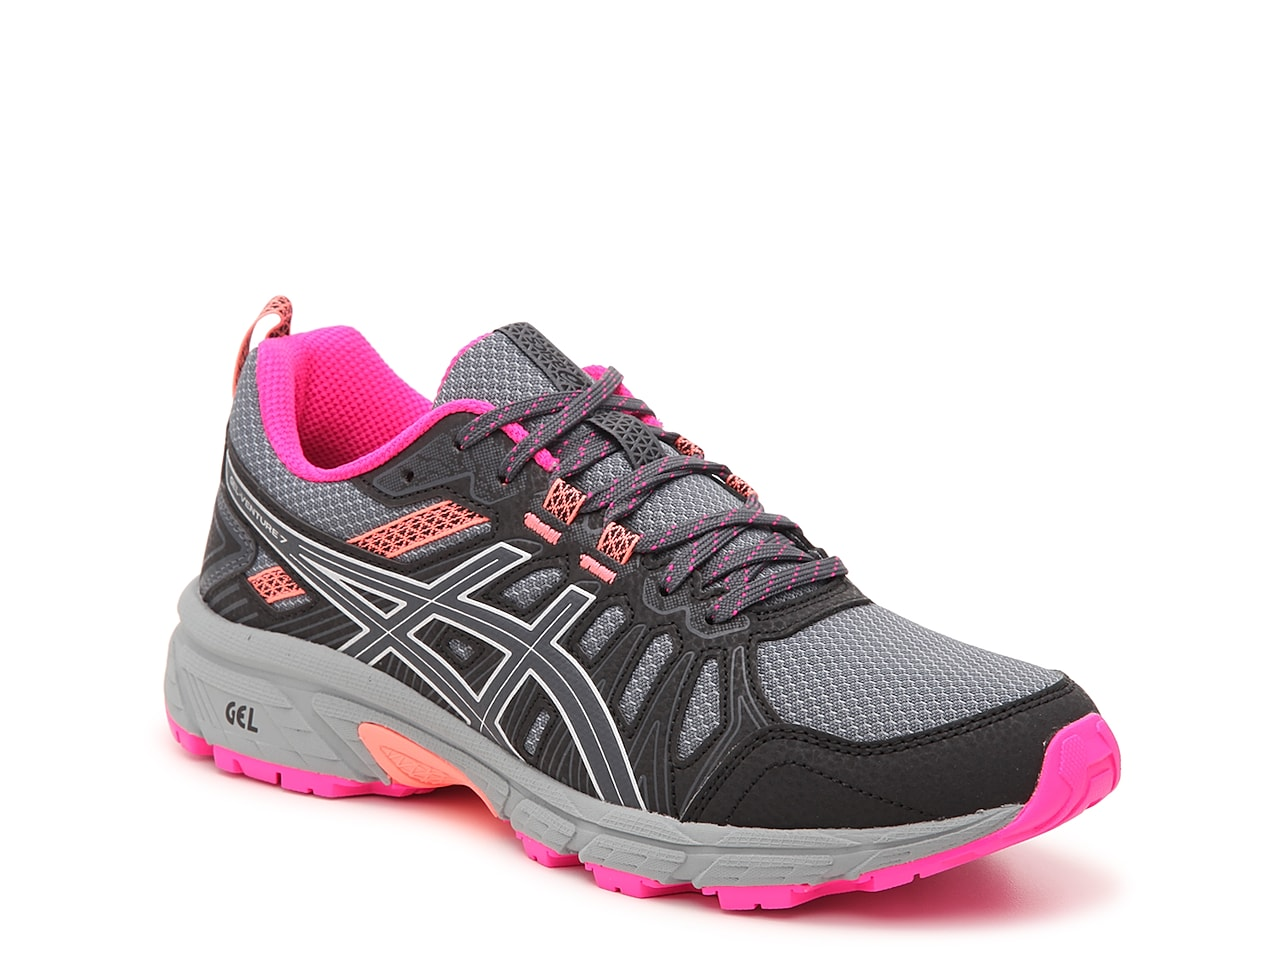 GEL-Venture 7 Trail Running Shoe - Women's